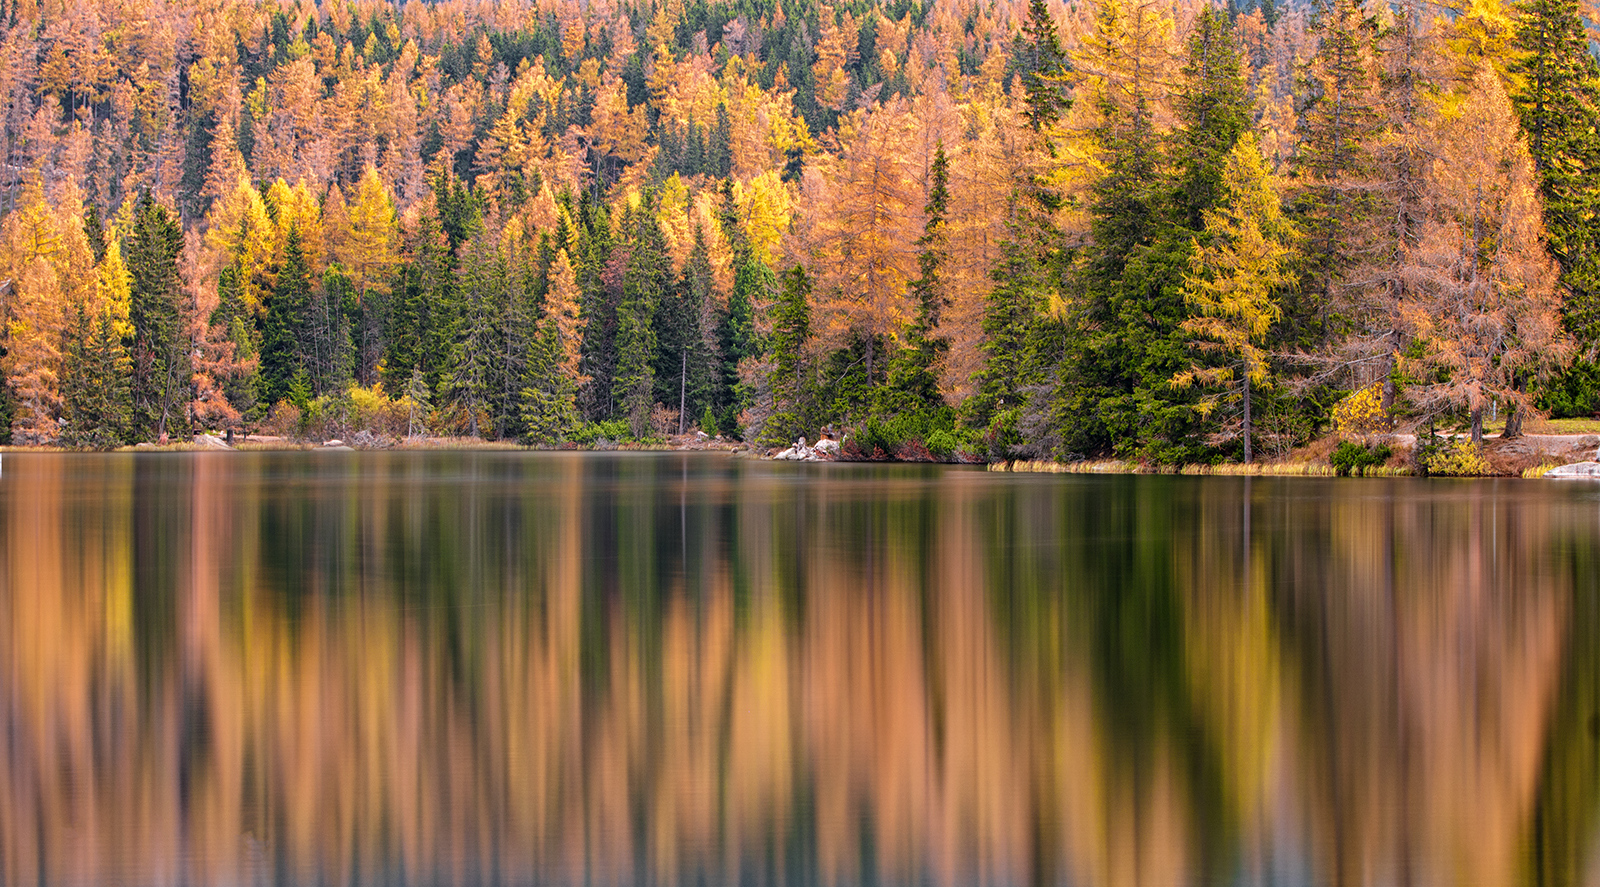 strbske pleso, slovakia, lake, water, autumn, threes, reflection